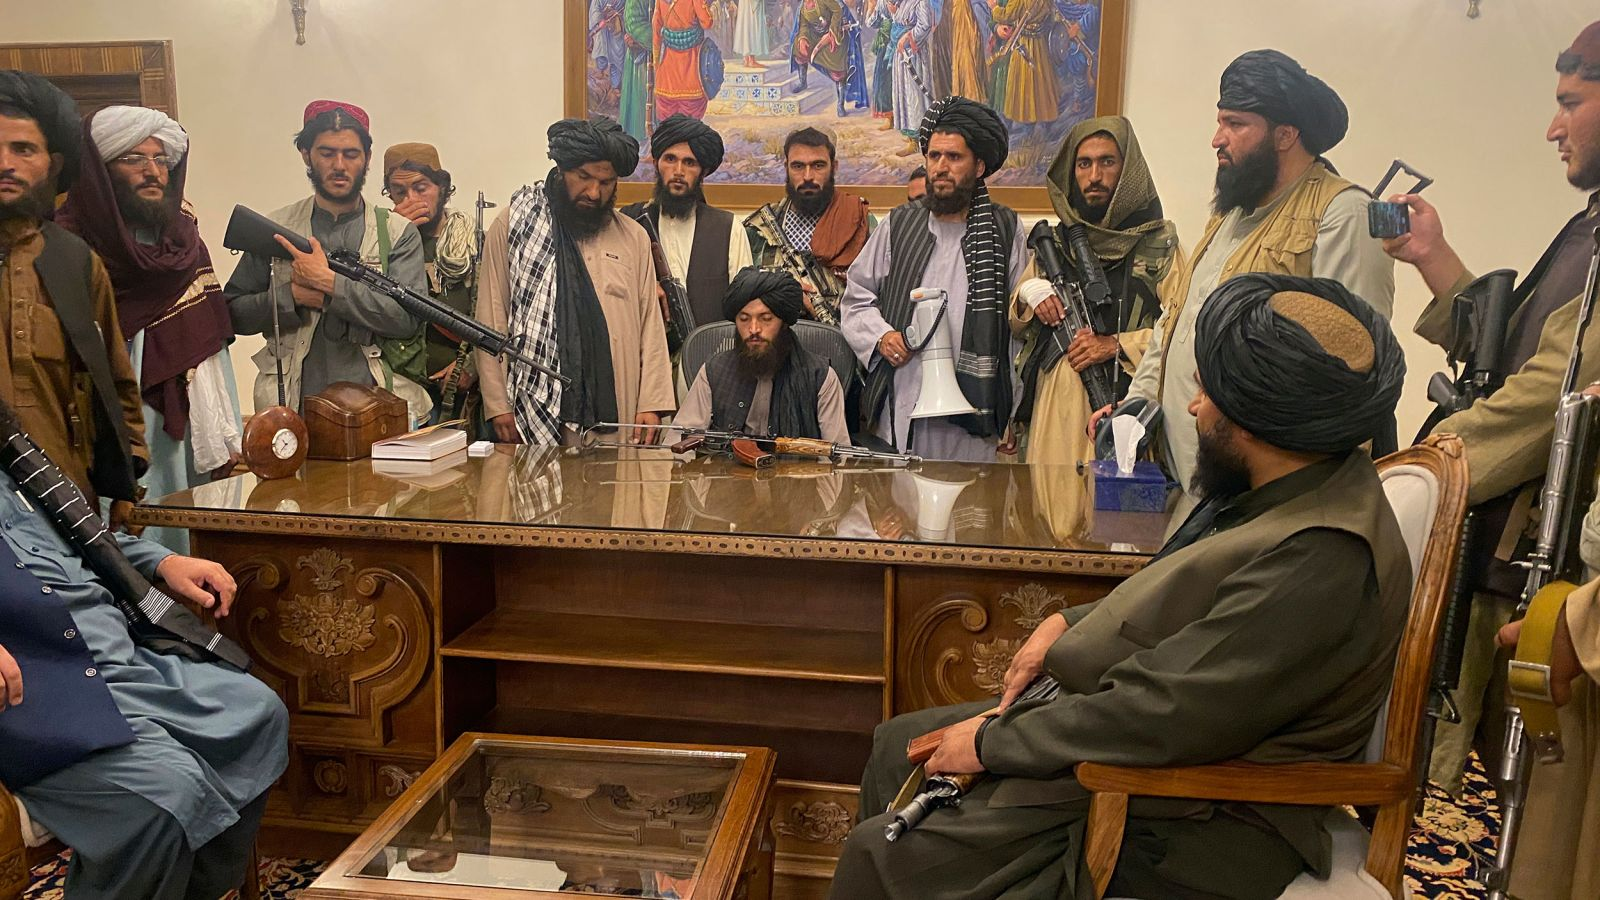 Taliban fighters sit inside the presidential palace in Kabul on August 15.